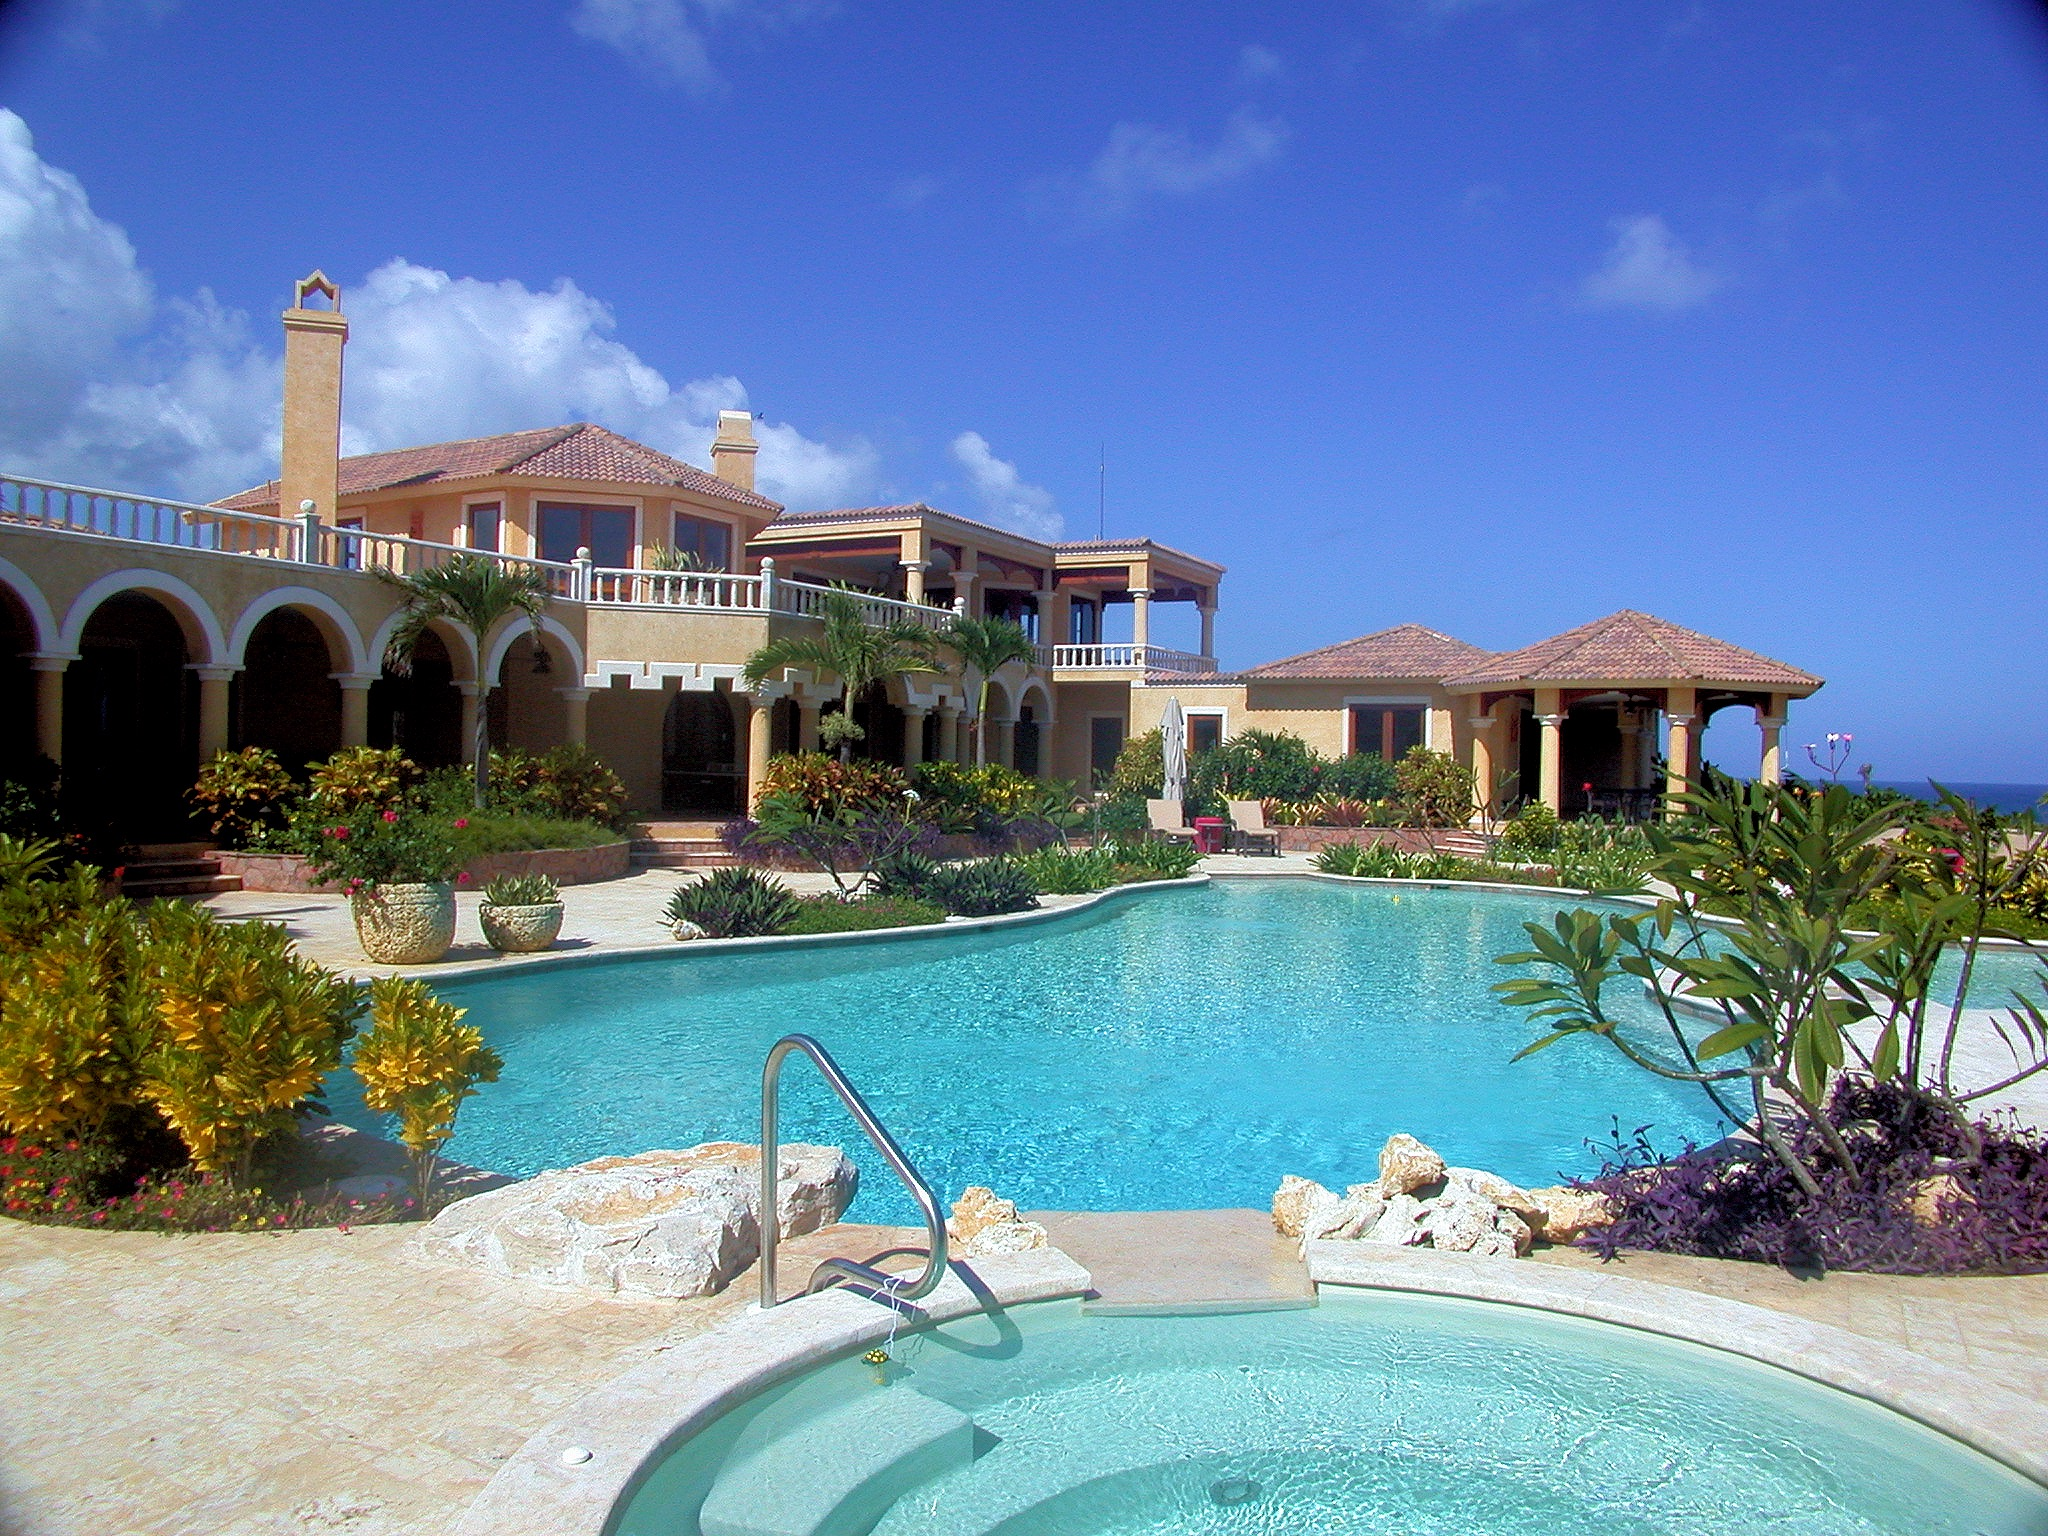 Dominican Republic Luxury Villa Rental